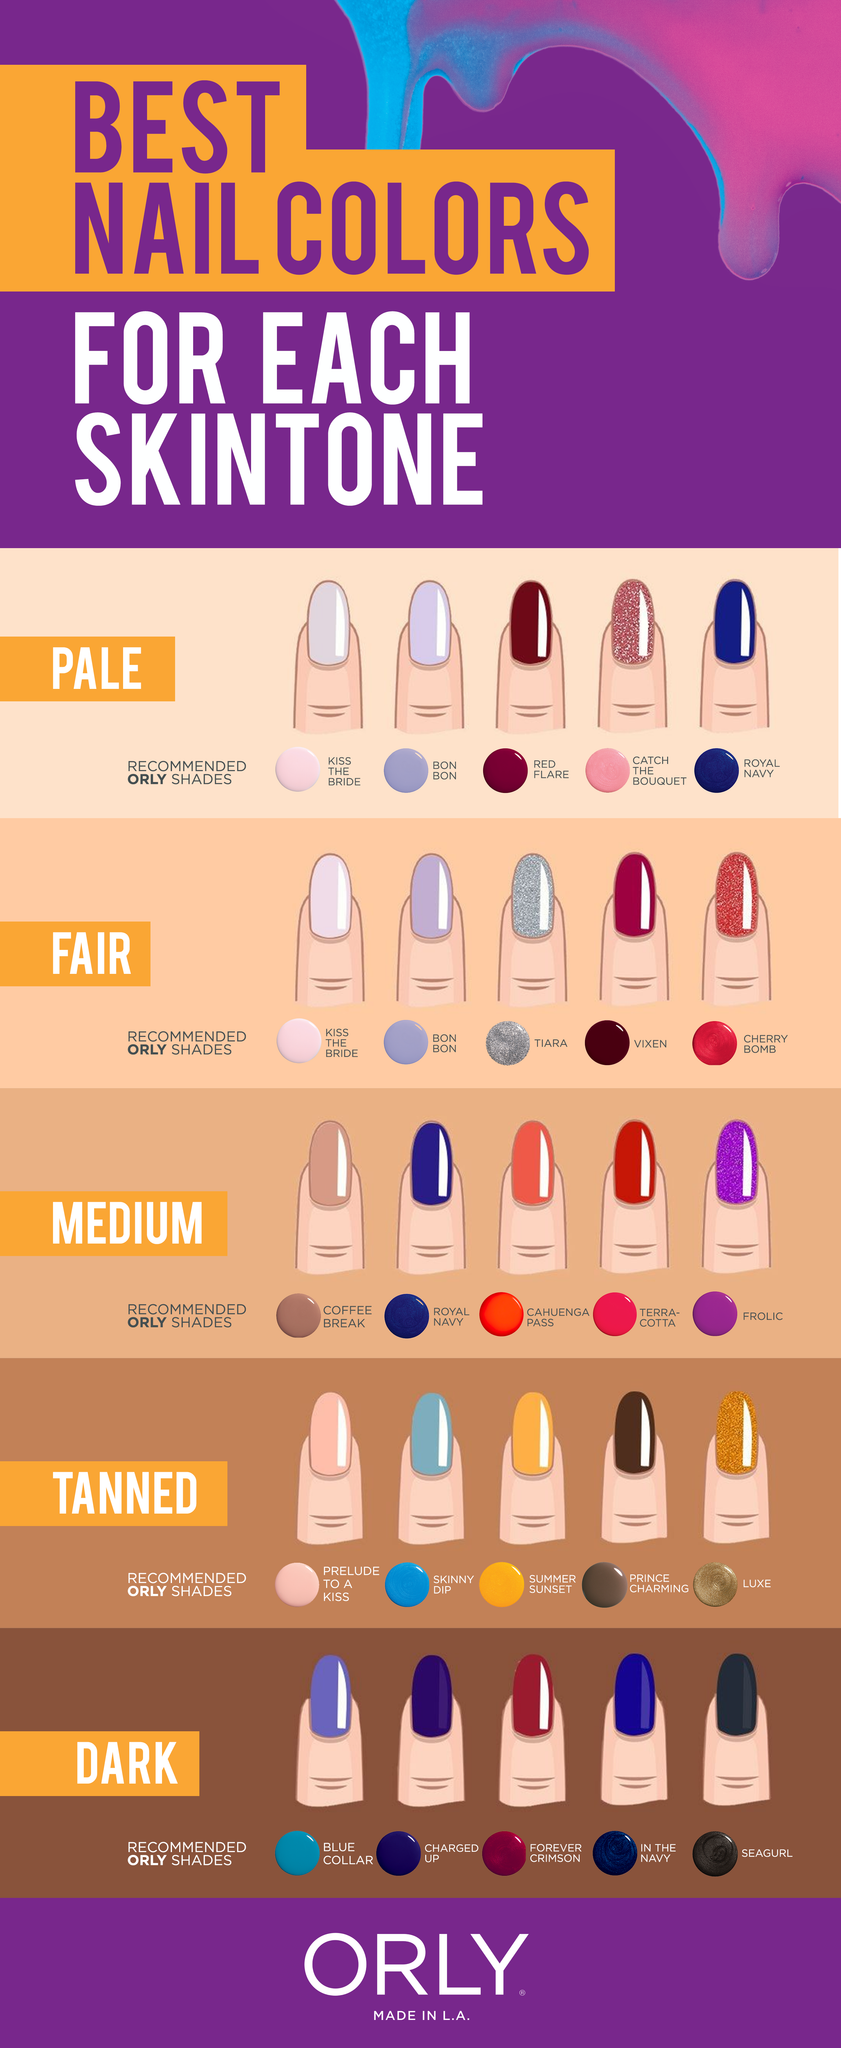 Orly Tips Best Nail Colors For Each Skin Tone